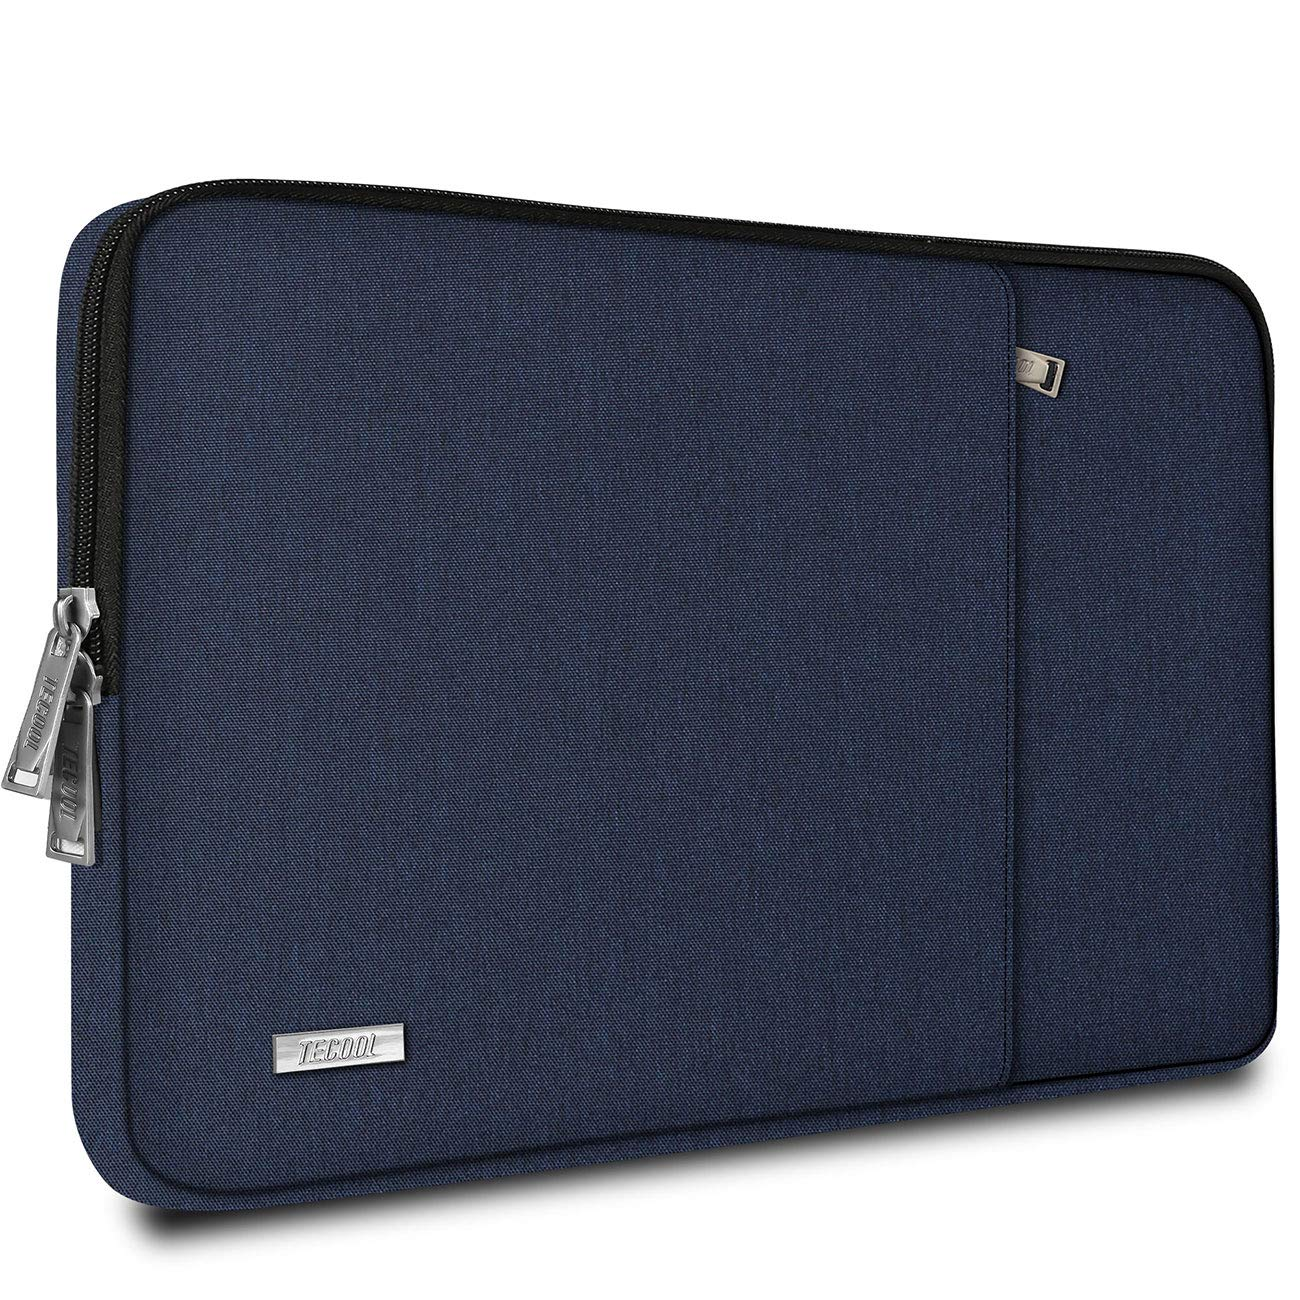 """TECOOL 13.3-13.5 Inch Laptop Sleeve Protective Case Cover with Front Pocket for 13.5"""" Surface Laptop 3/2, MacBook Air/Pro 13, 13.3""""-14"""" Ultrabook Chromebook Computer Bag Water Repellent, Dark Blue"""